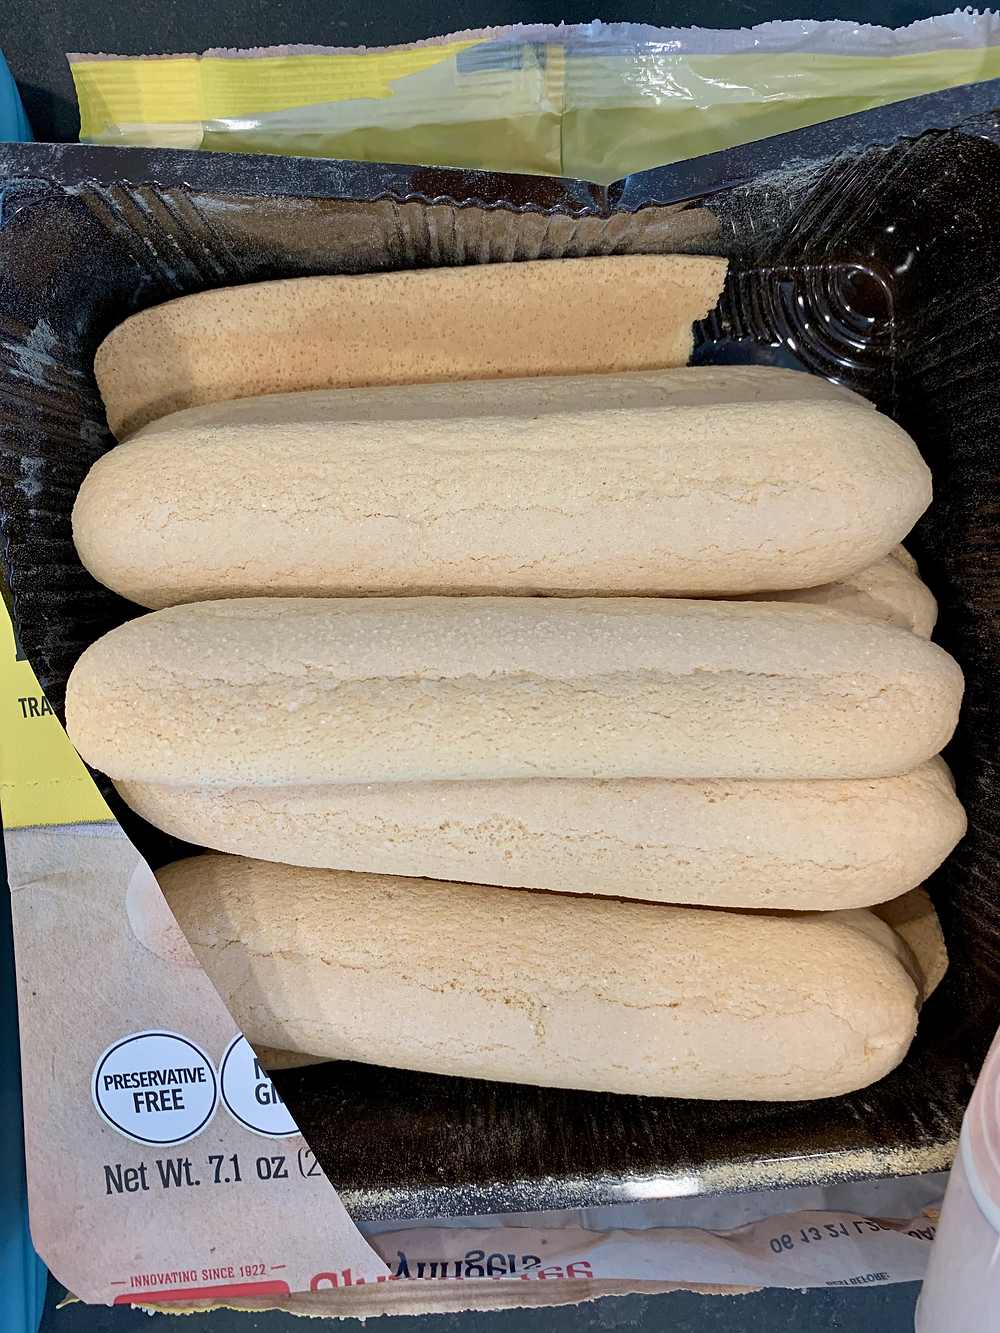 The inside of a package of Schar Gluten Free Ladyfingers